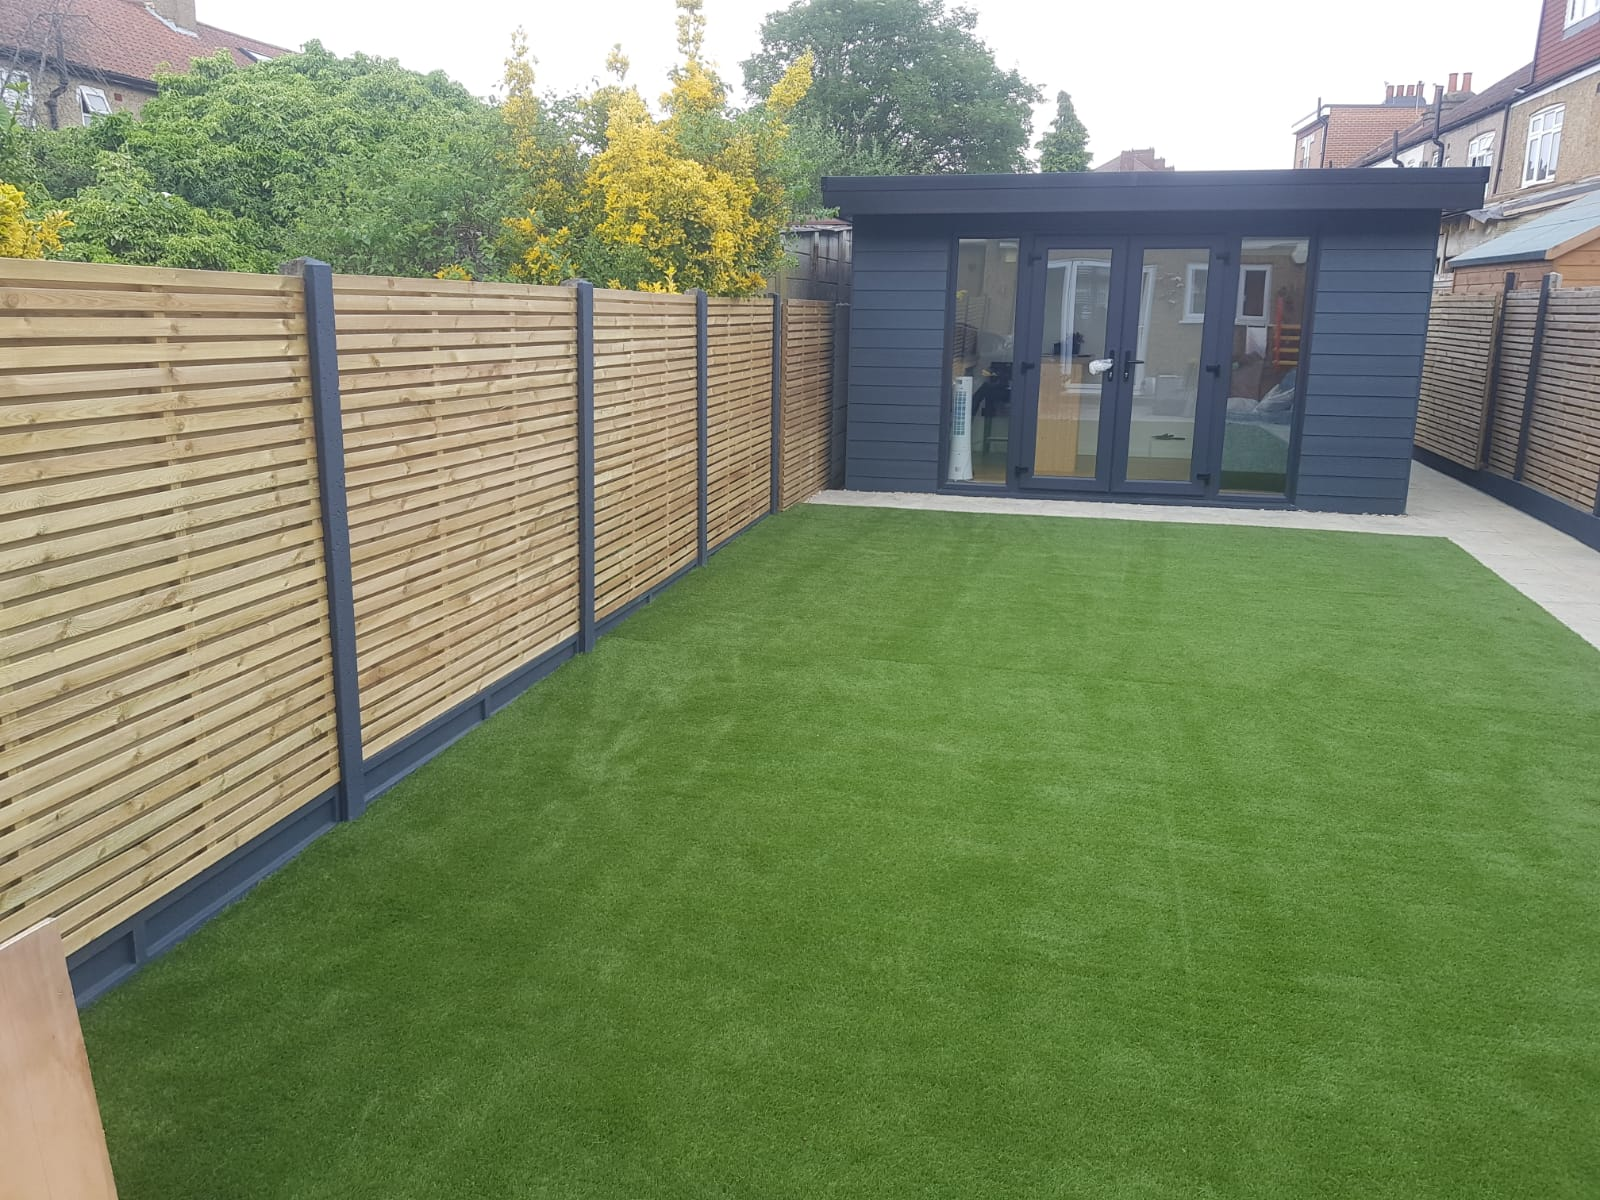 new lawn with artificial grass